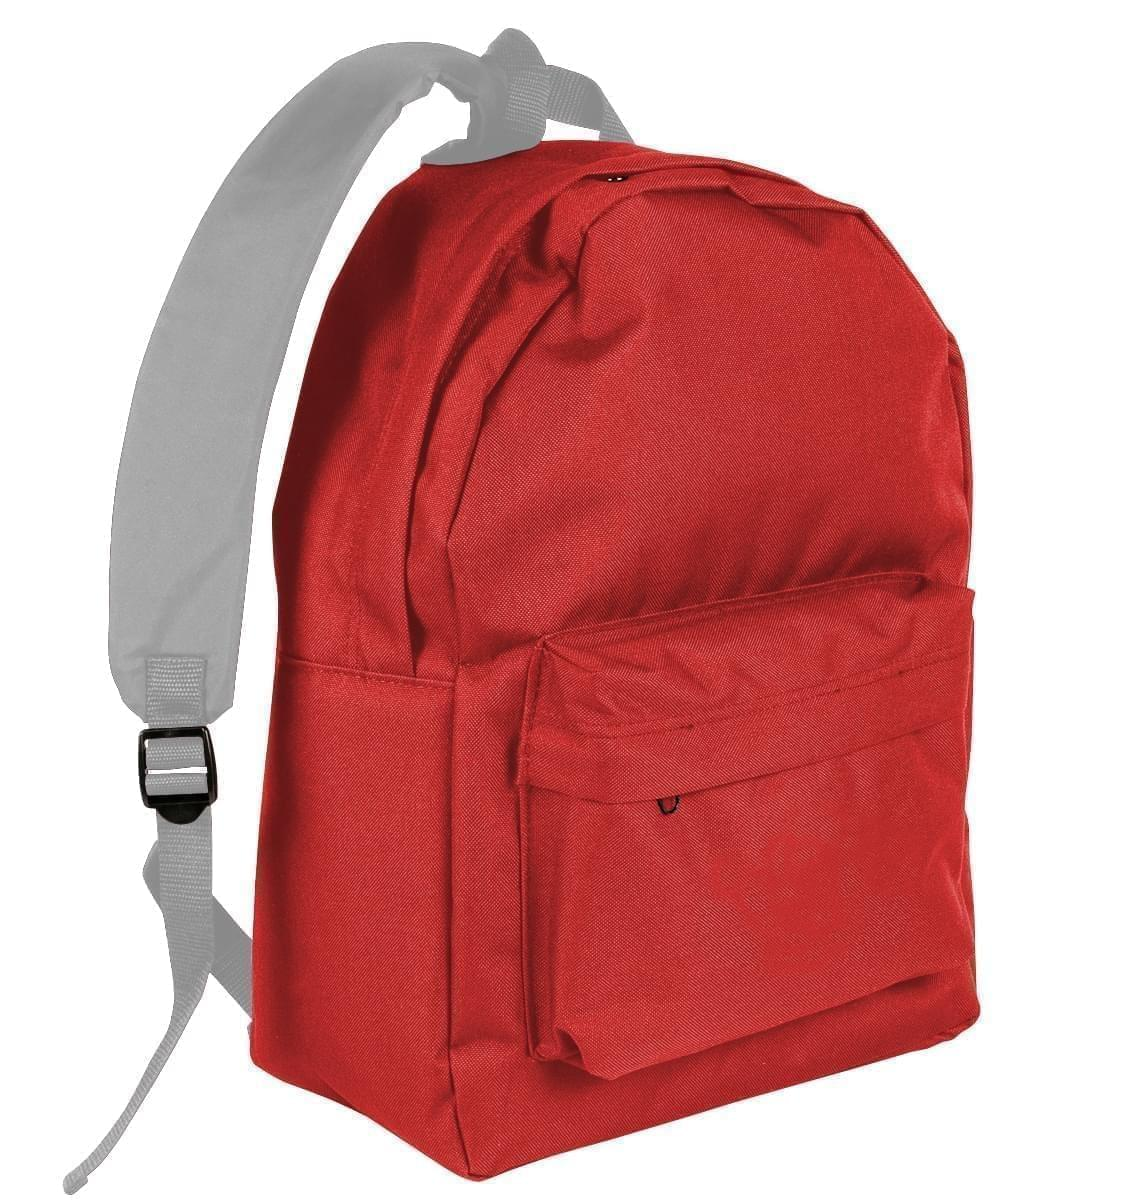 USA Made Nylon Poly Backpack Knapsacks, Red-Grey, 8960-AZU